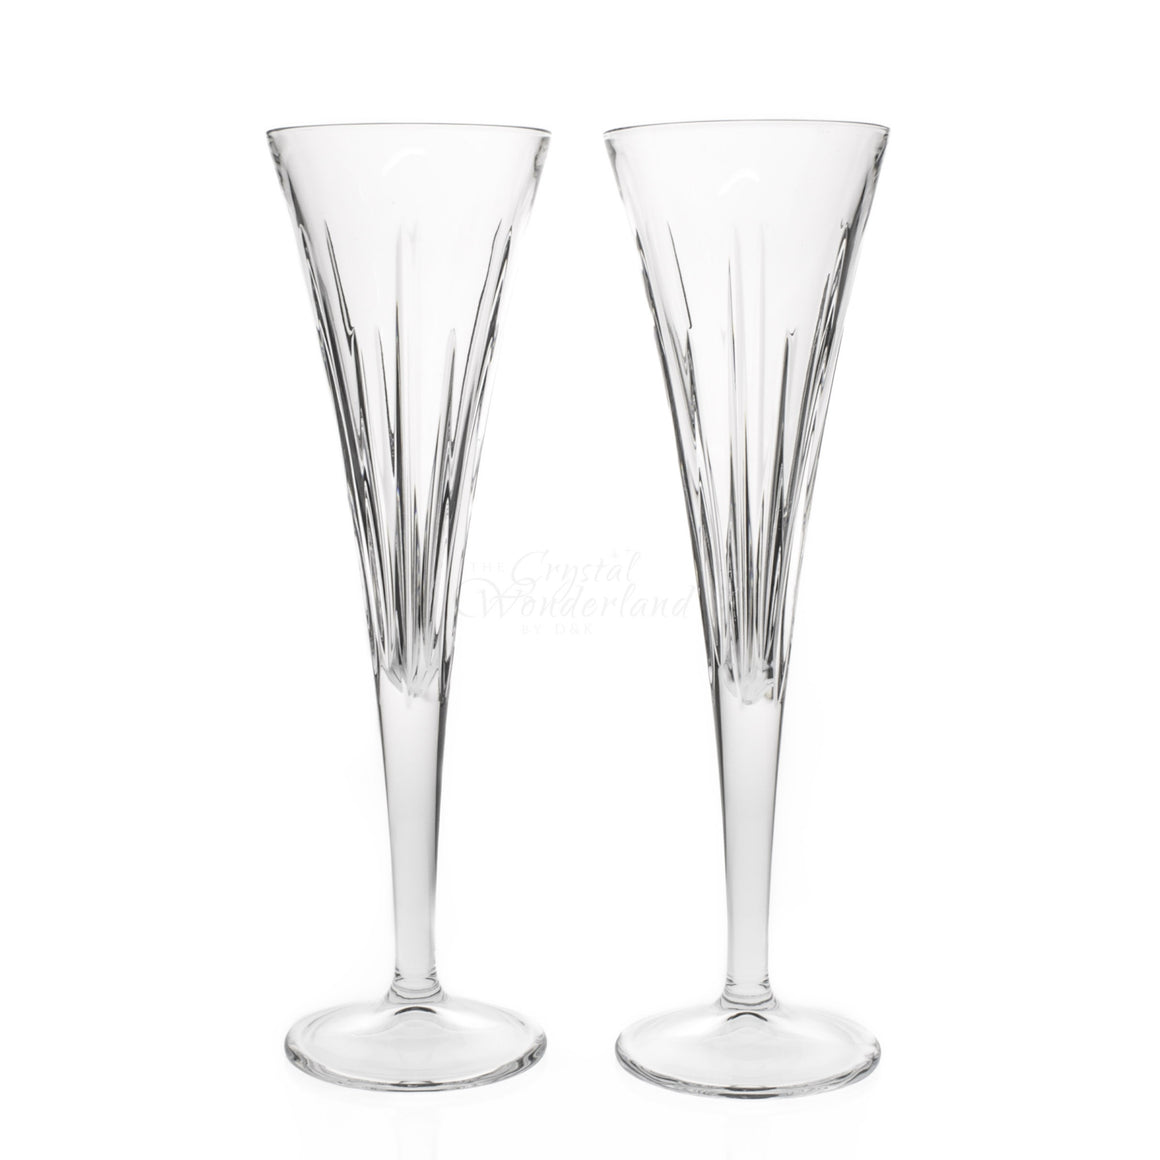 Line Crystal Toasting Flutes, Pair - The Crystal Wonderland